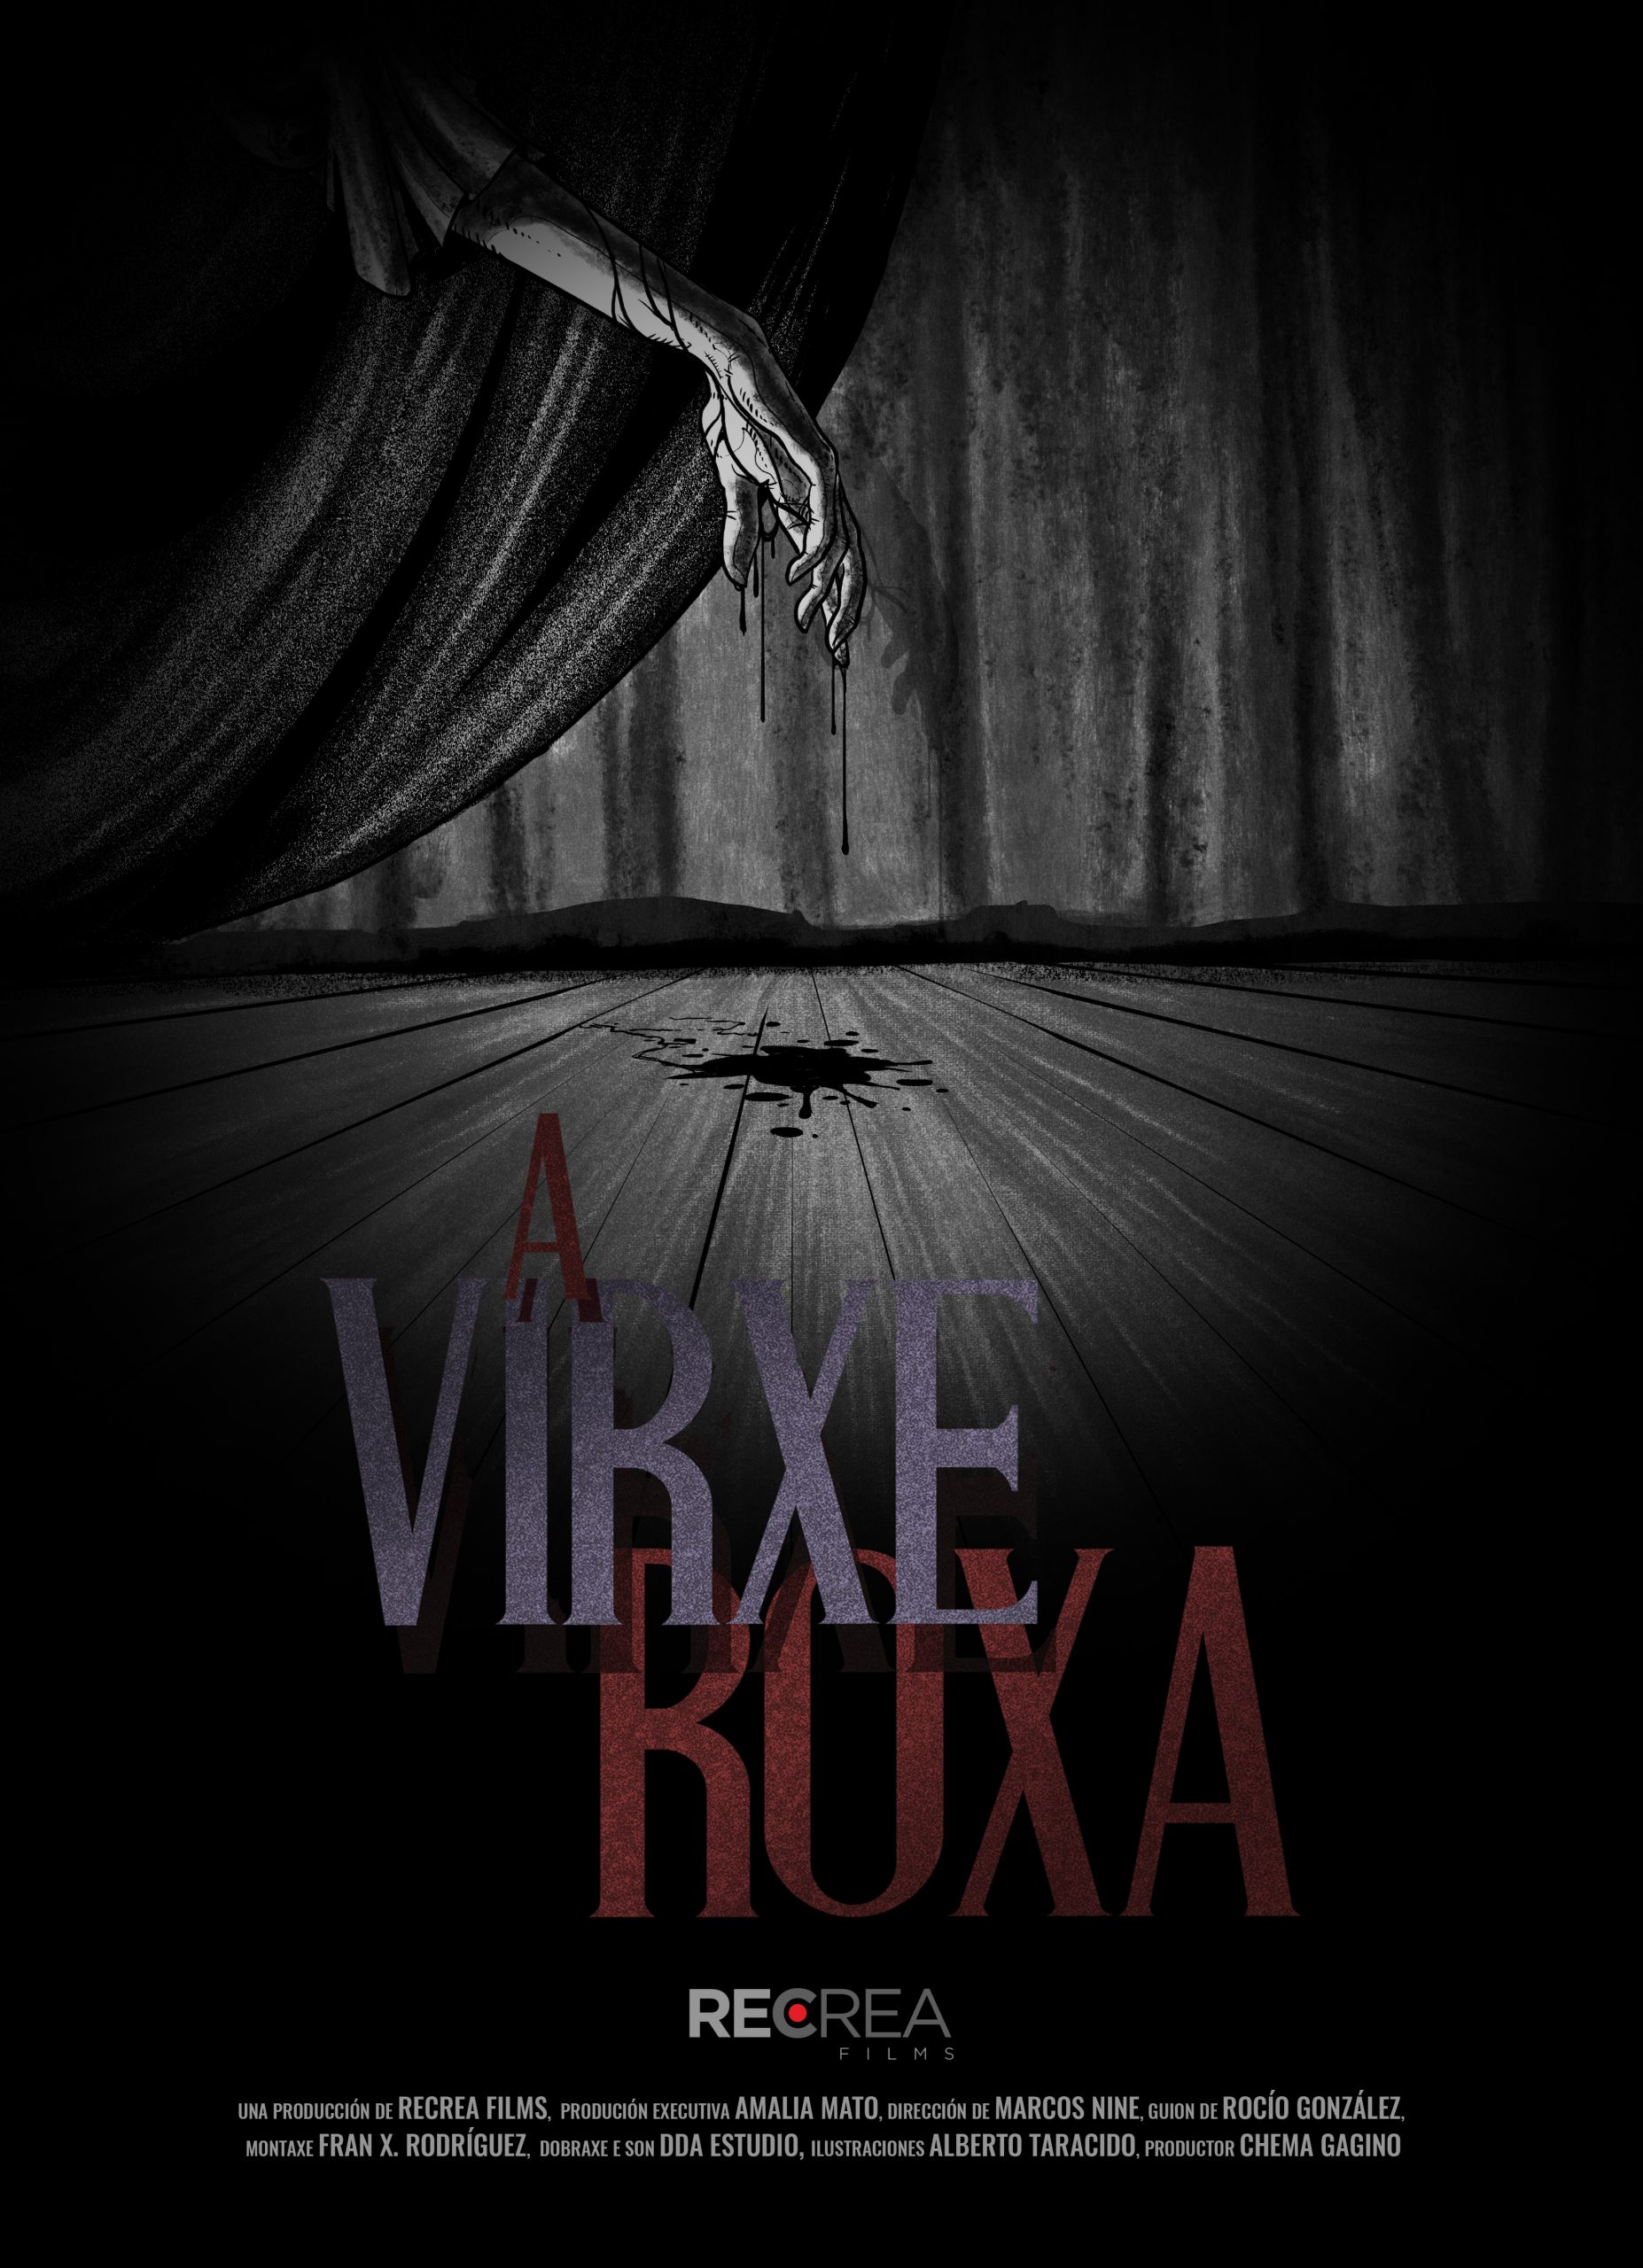 cartel-virxe-roxa-recreafilms